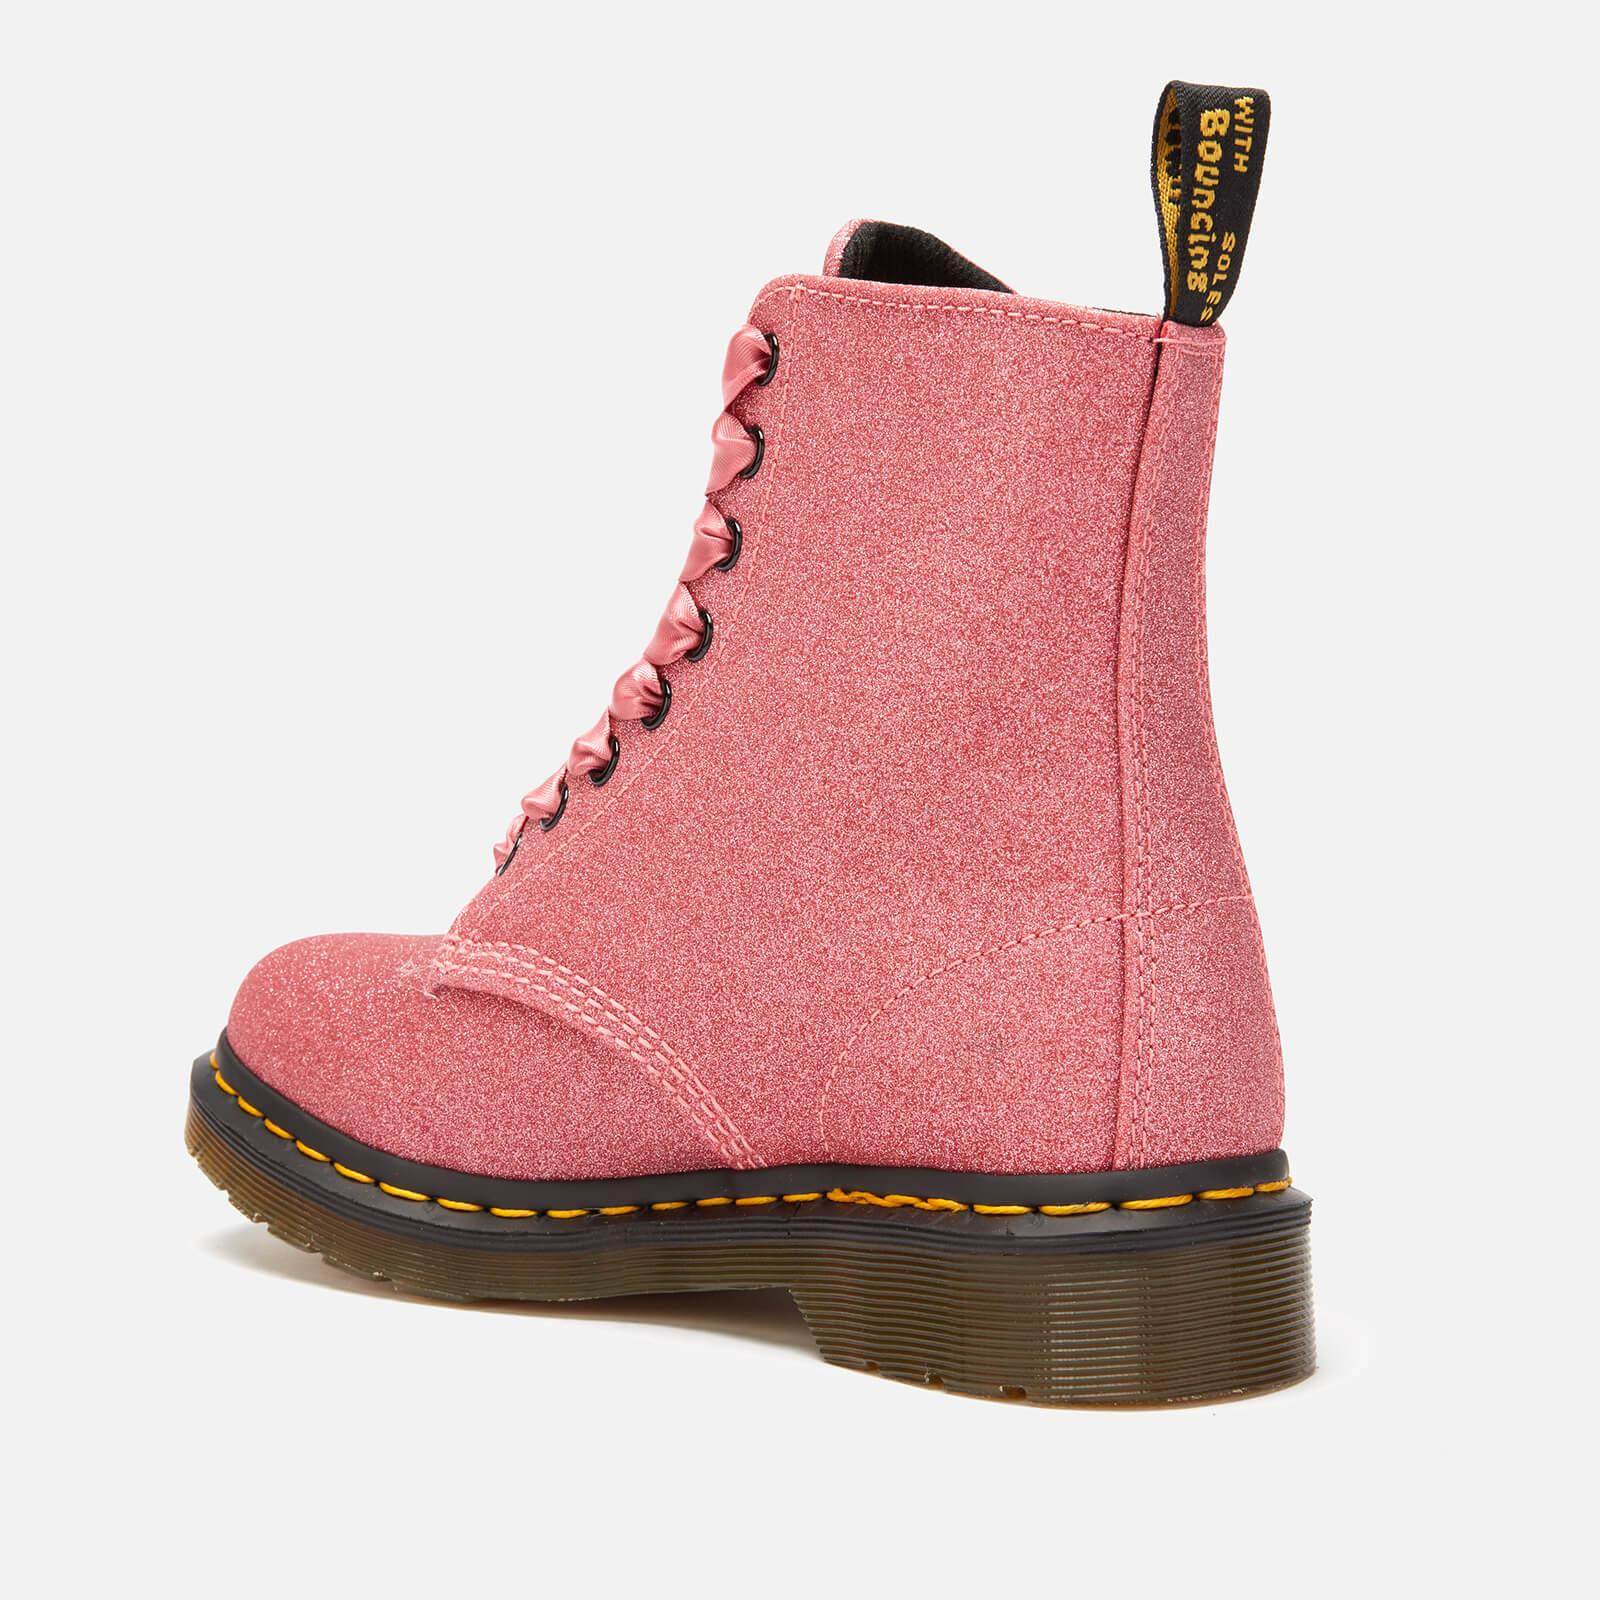 cd1a61f6d6f6 Dr. Martens 1460 Pascal Glitter 8-eye Boots in Pink - Lyst